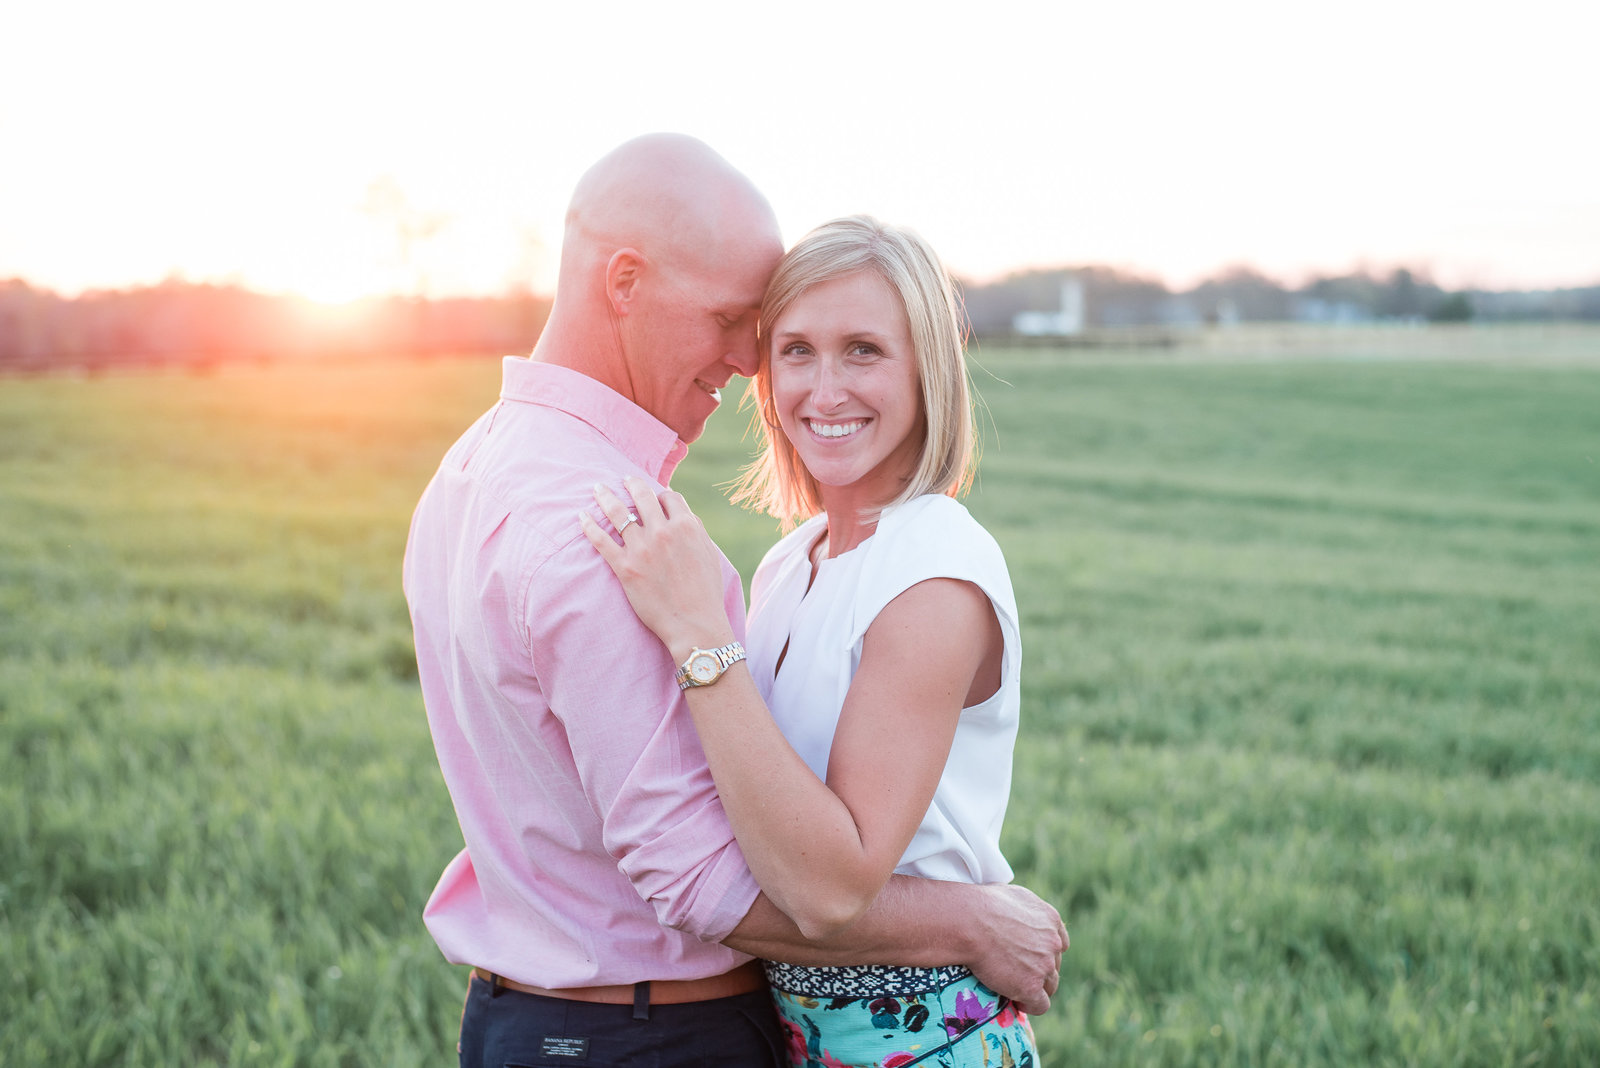 Brittany-and-Zach-Richmond-Engagement-Session-Melissa-Desjardins-Photography-3